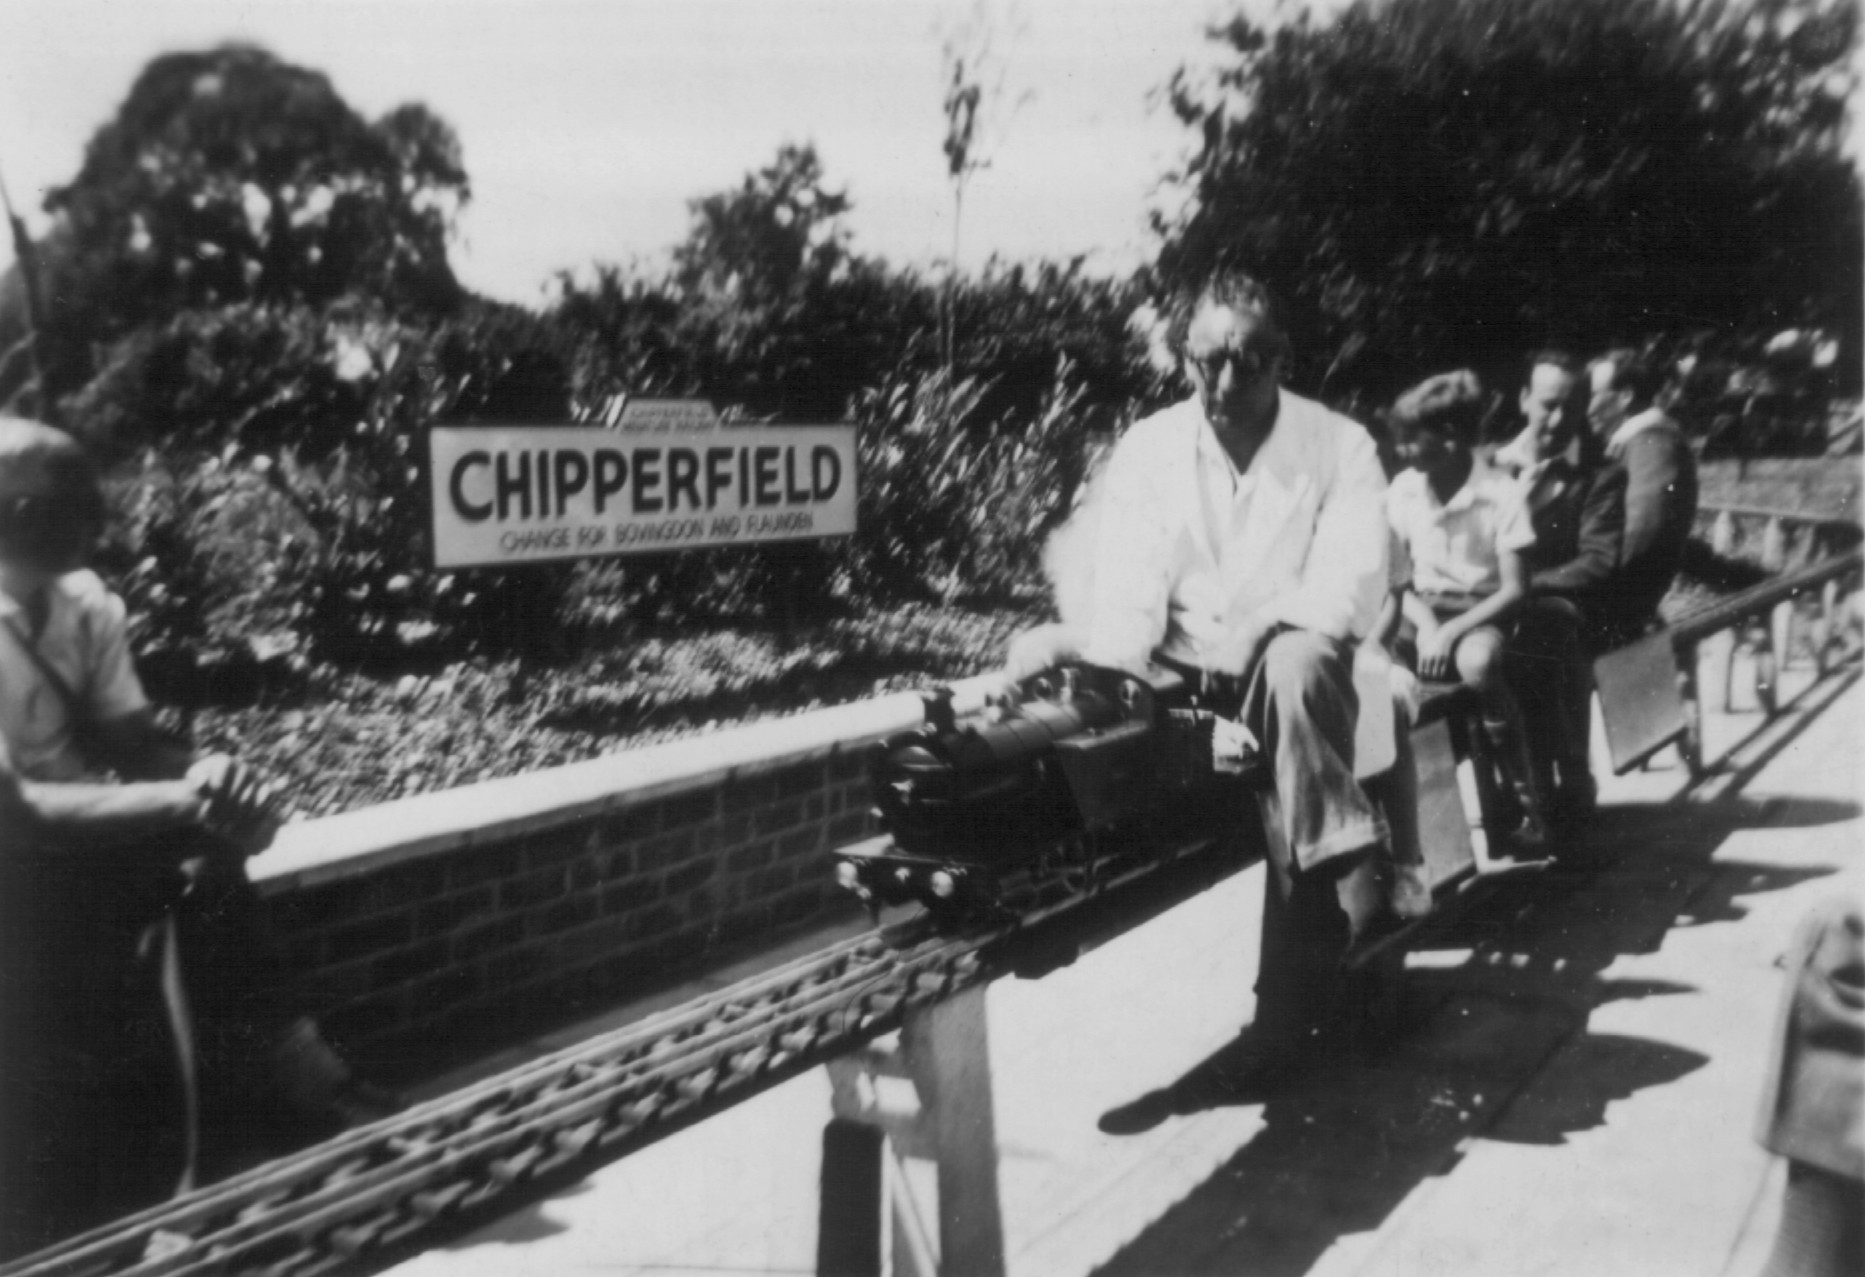 D Saunders pic_Chipperfield in early 1950s